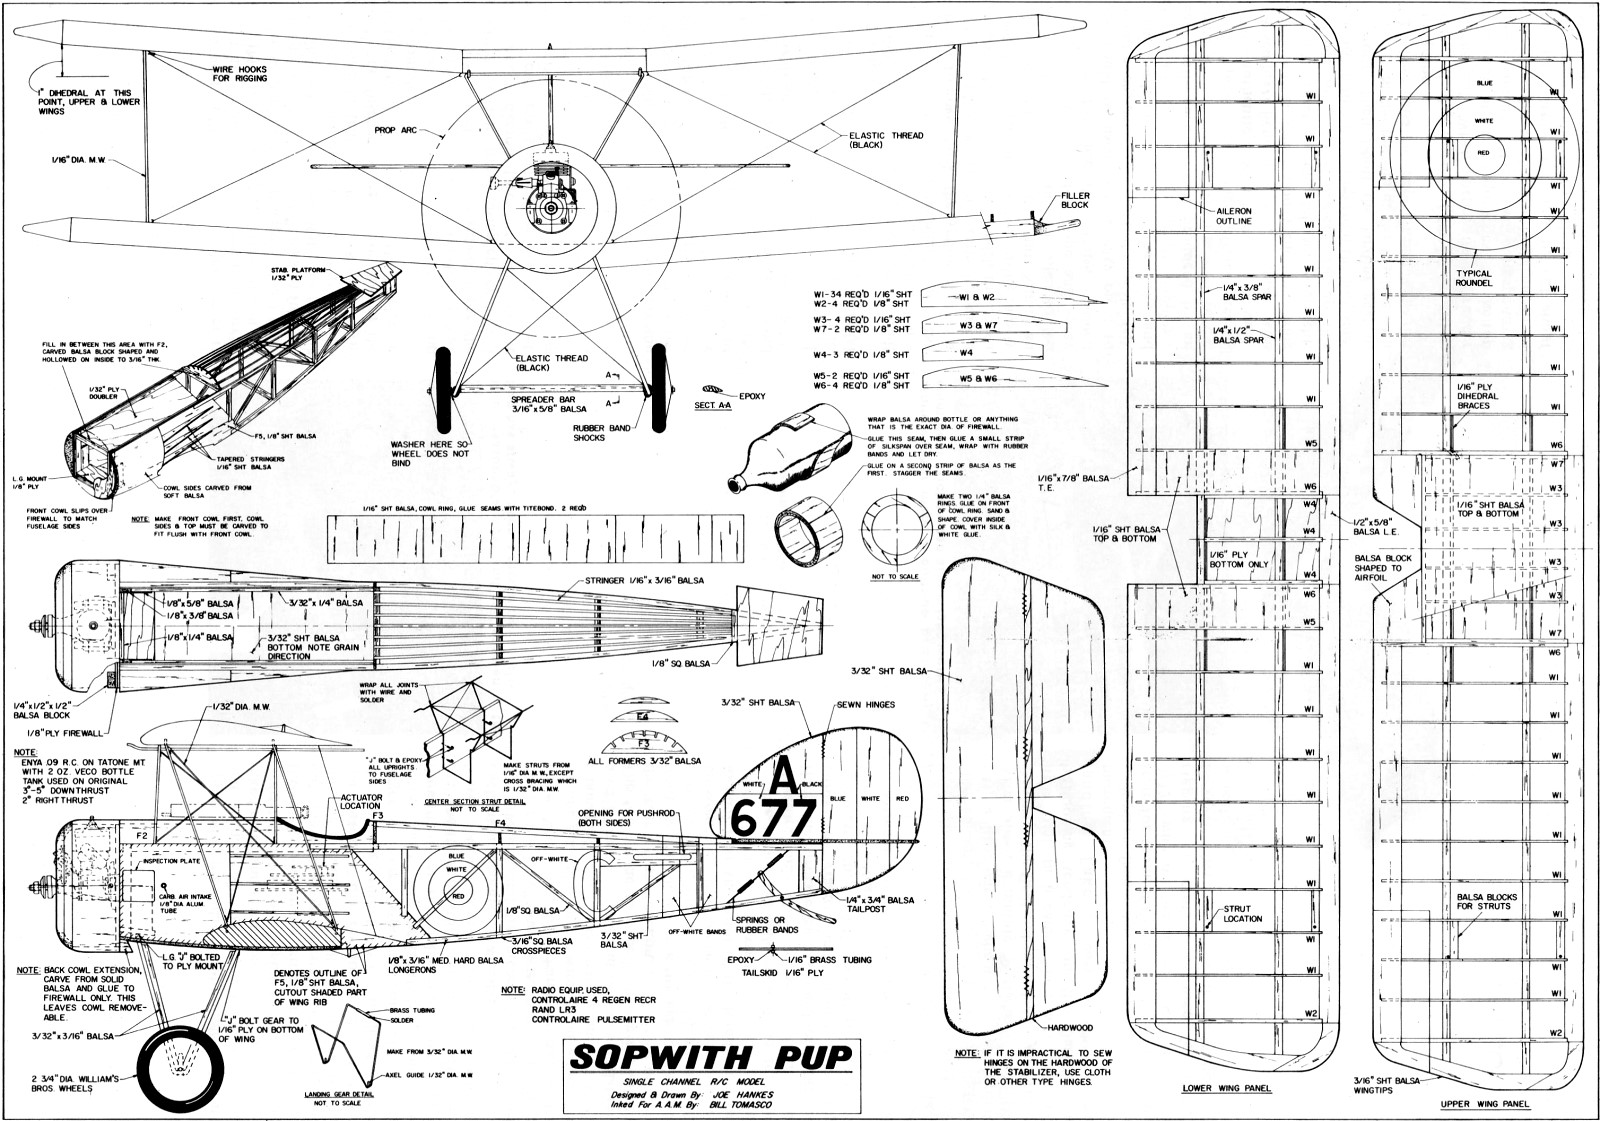 Sopwith Pup Article Amp Plans June American Aircraft